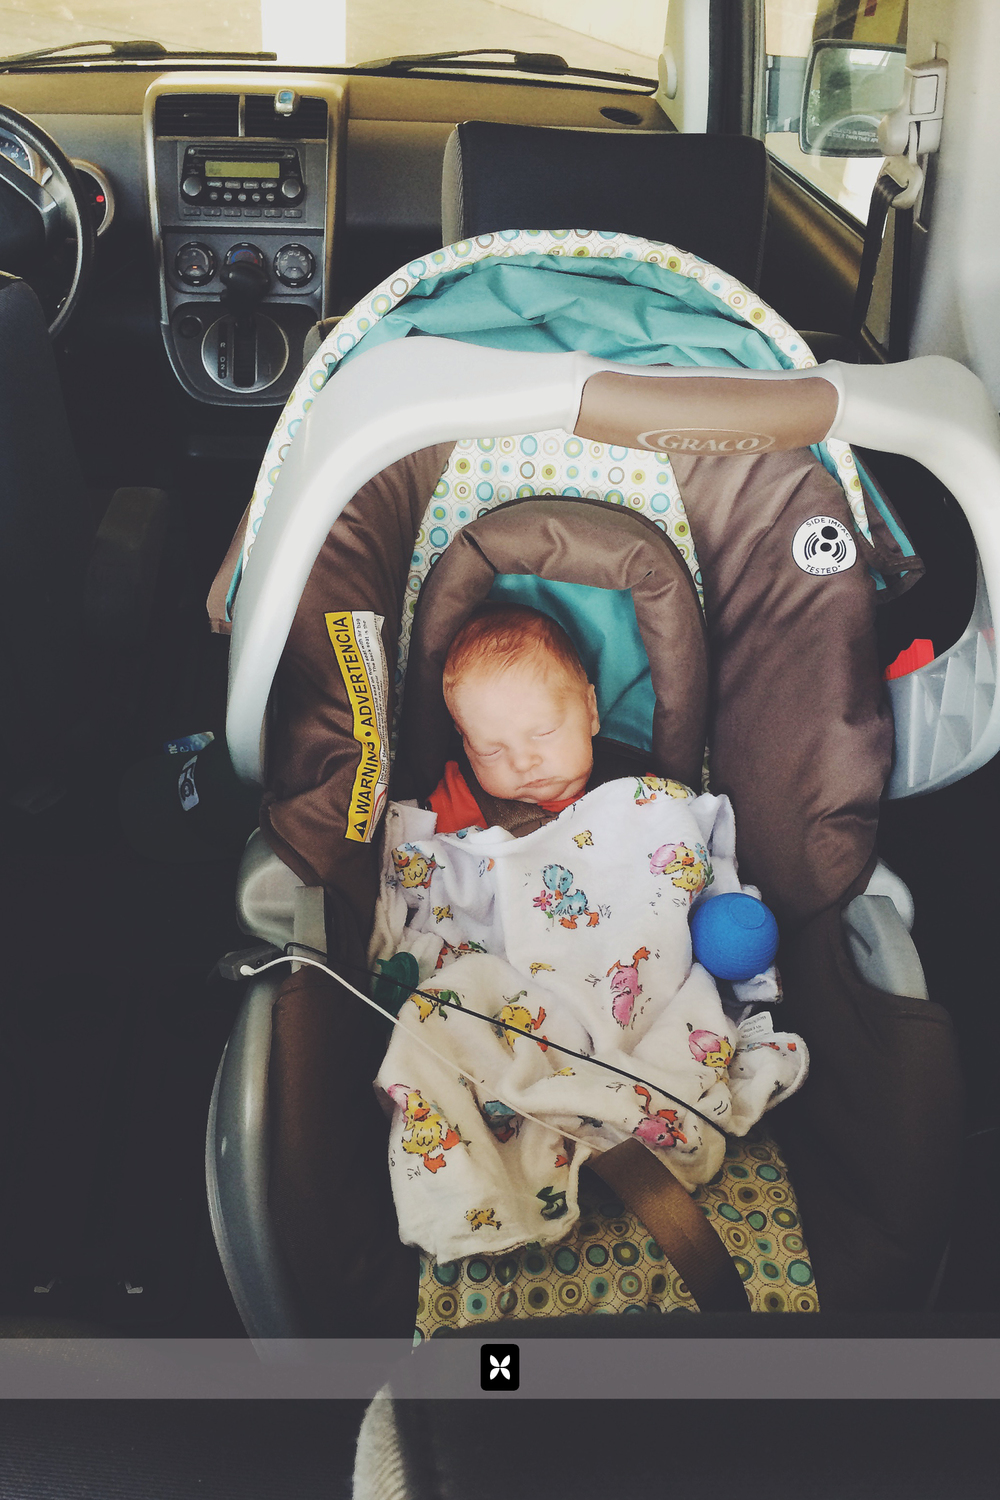 Weston's first ride in the Novomobile. Clearly, he's beyond excited.